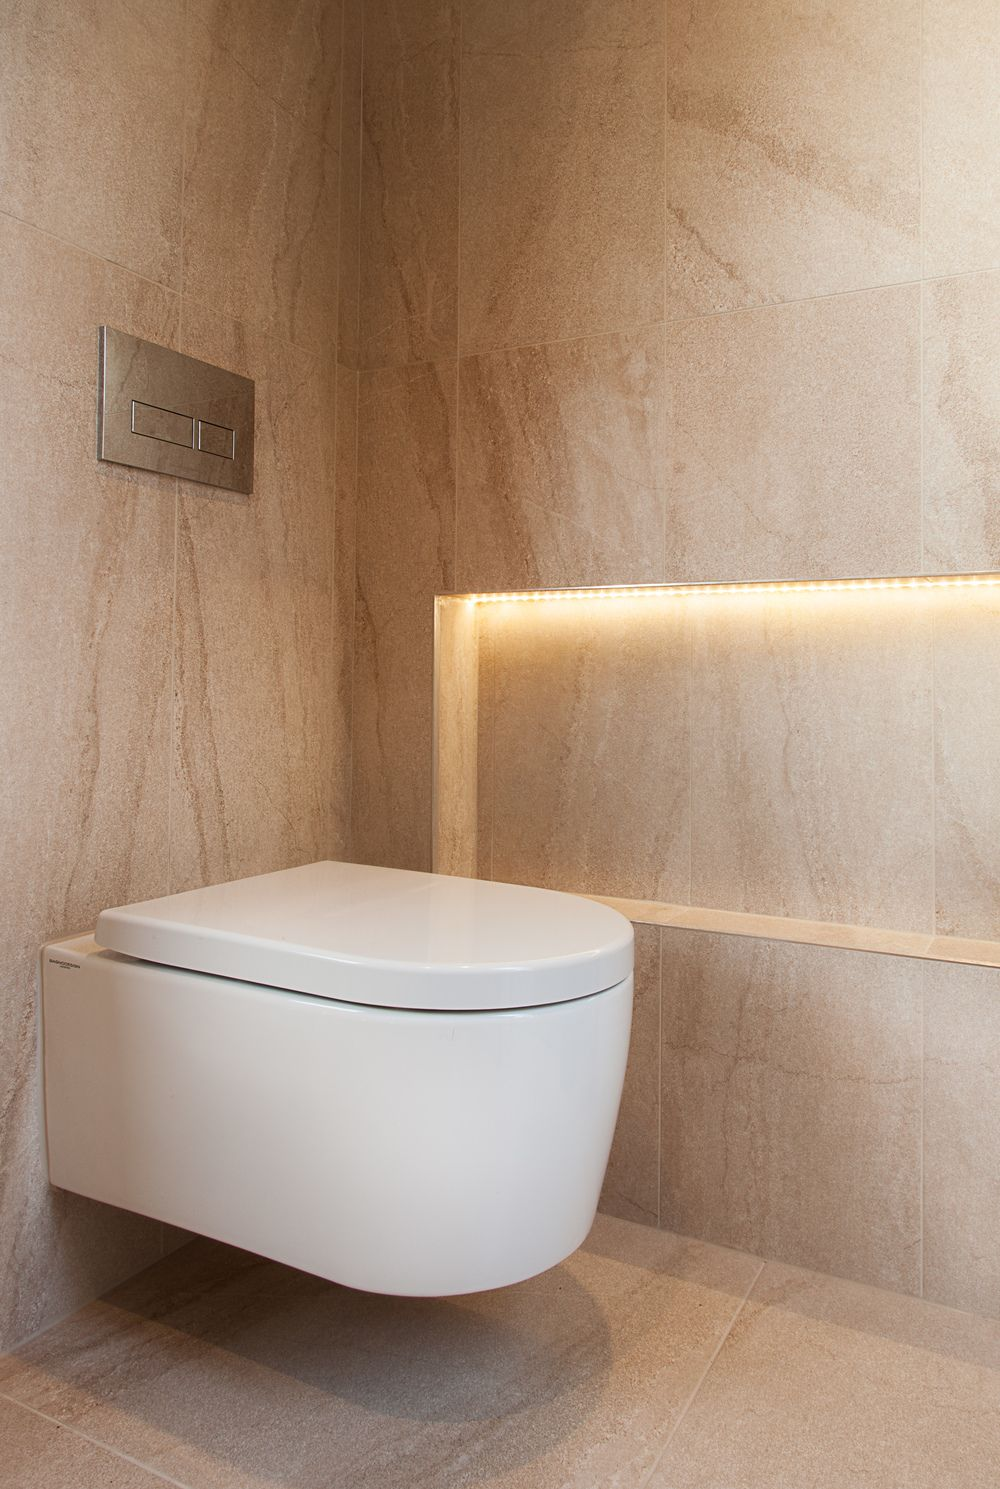 Recessed Niche With Led Lighting | Wall Hung Hidden Cistern Toilet | # Bathroom #cloakroom